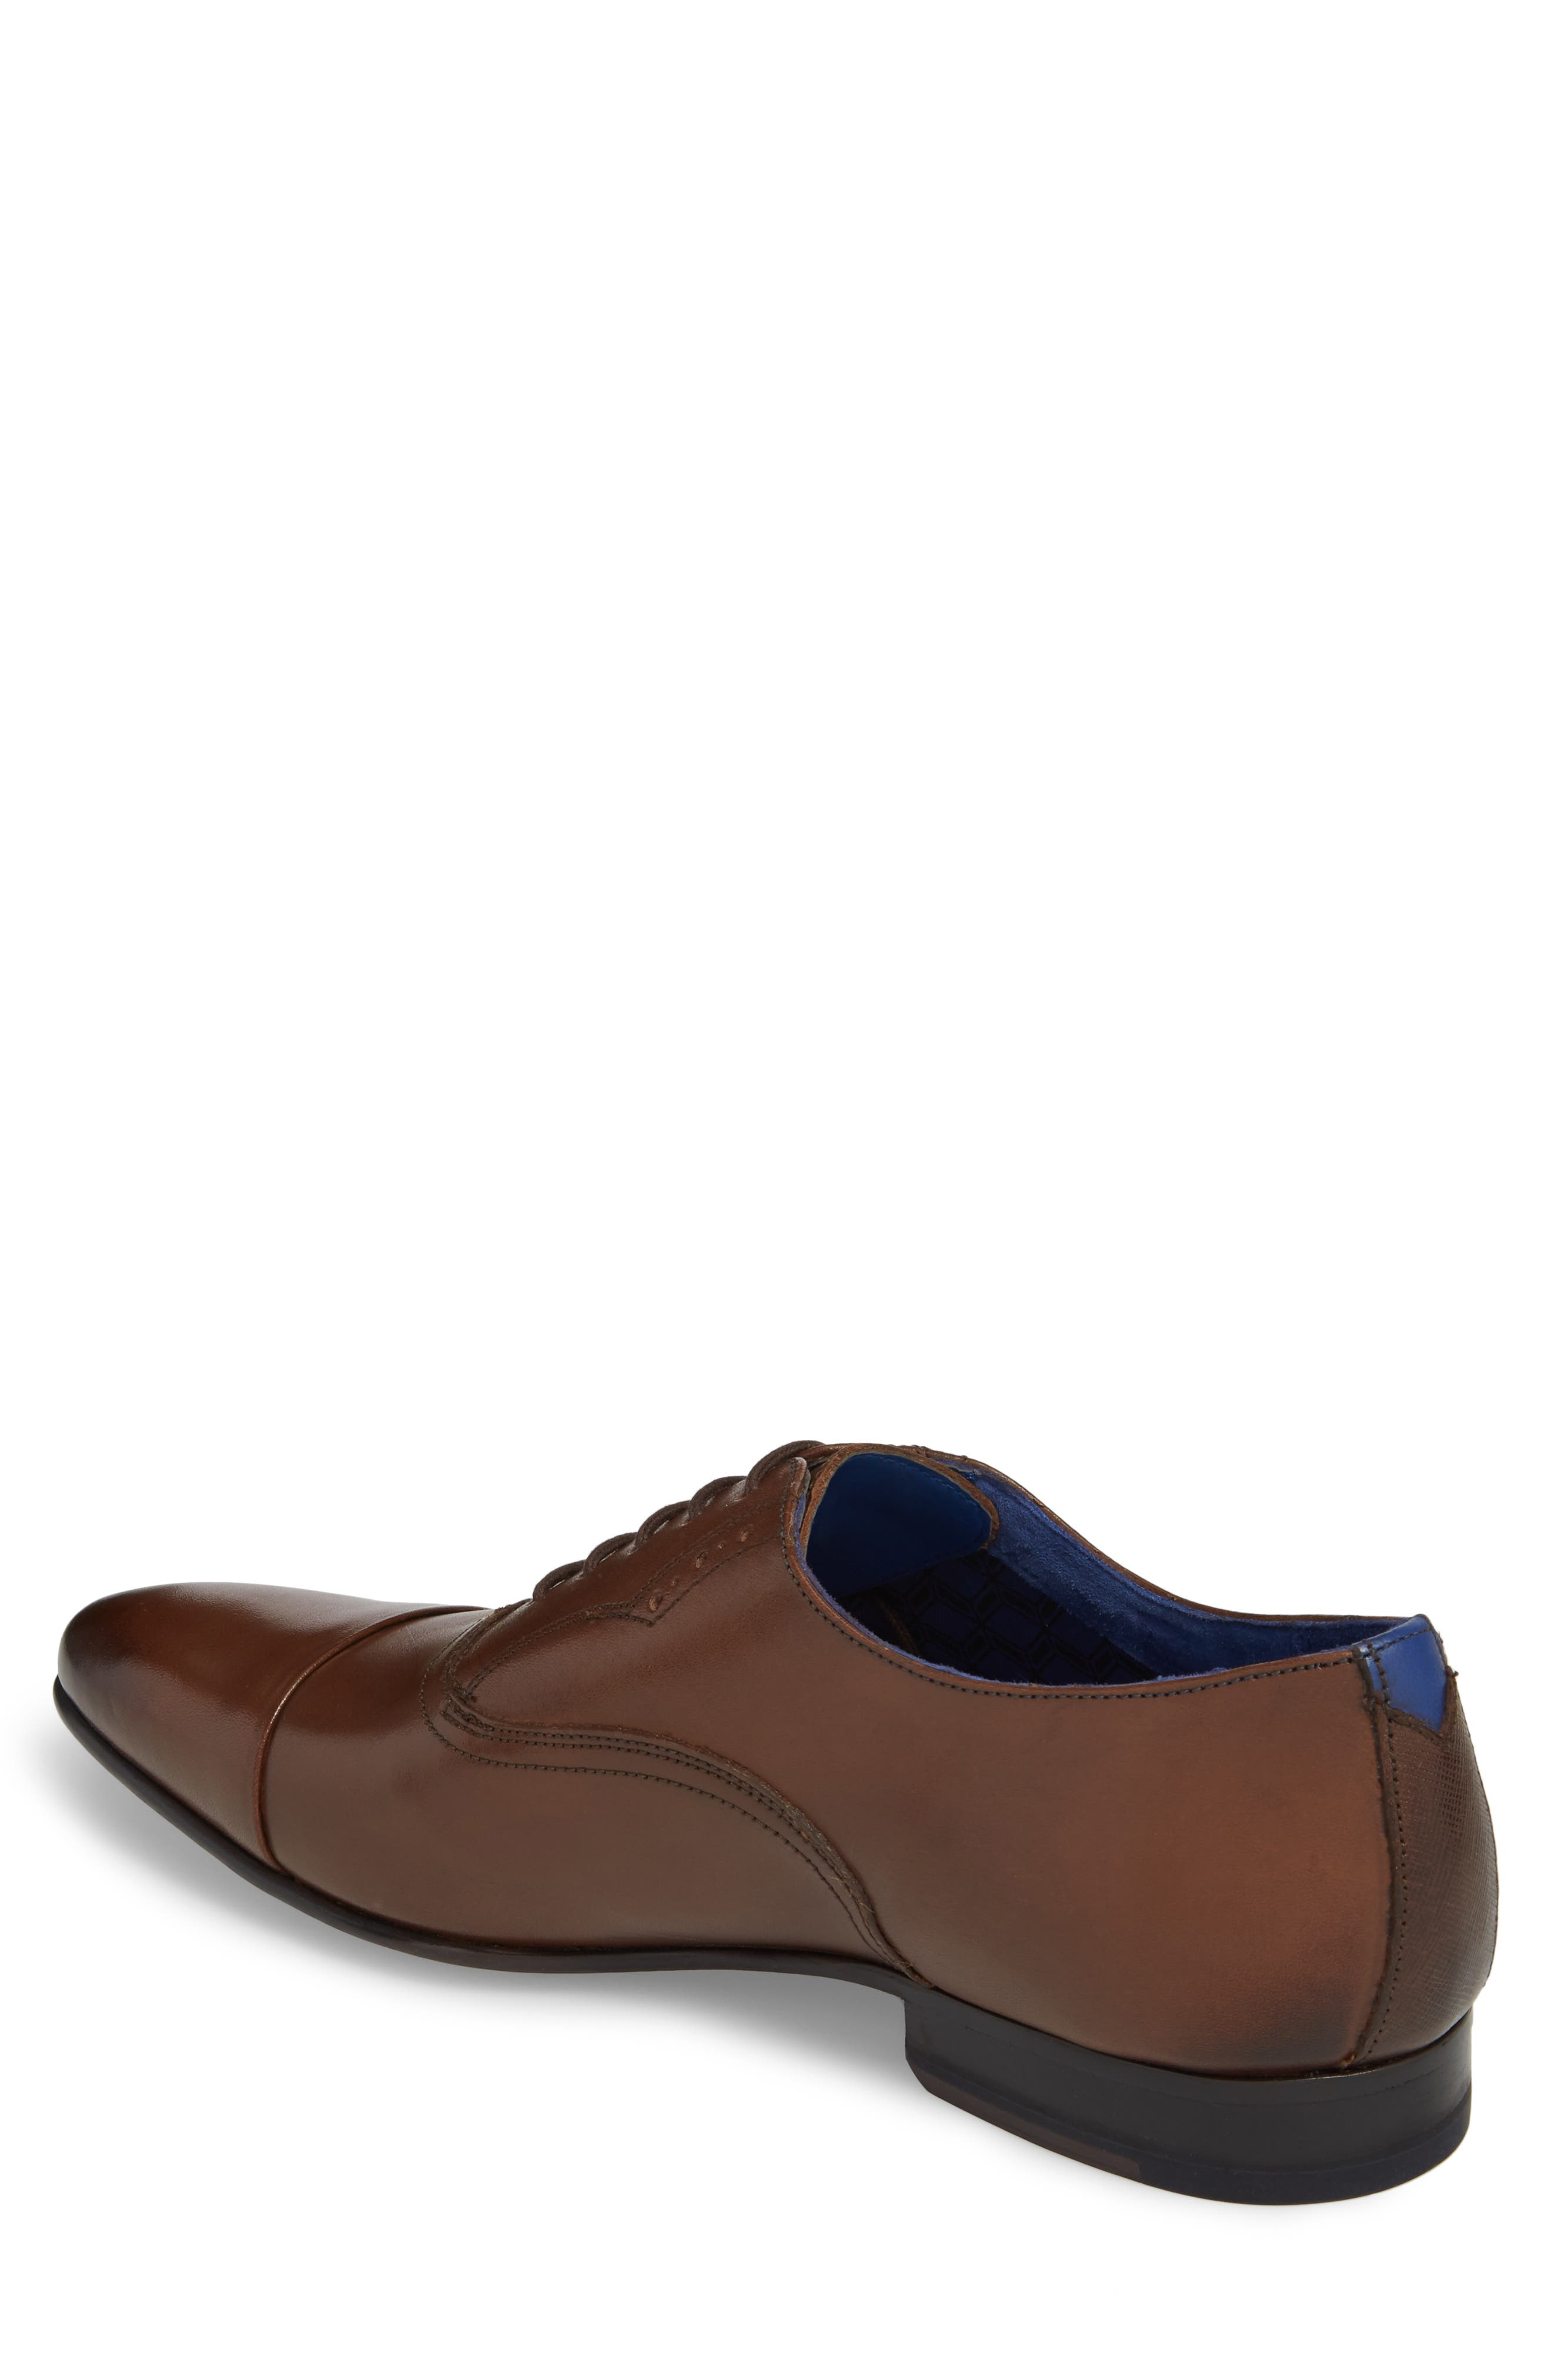 Murain Cap Toe Oxford,                             Alternate thumbnail 6, color,